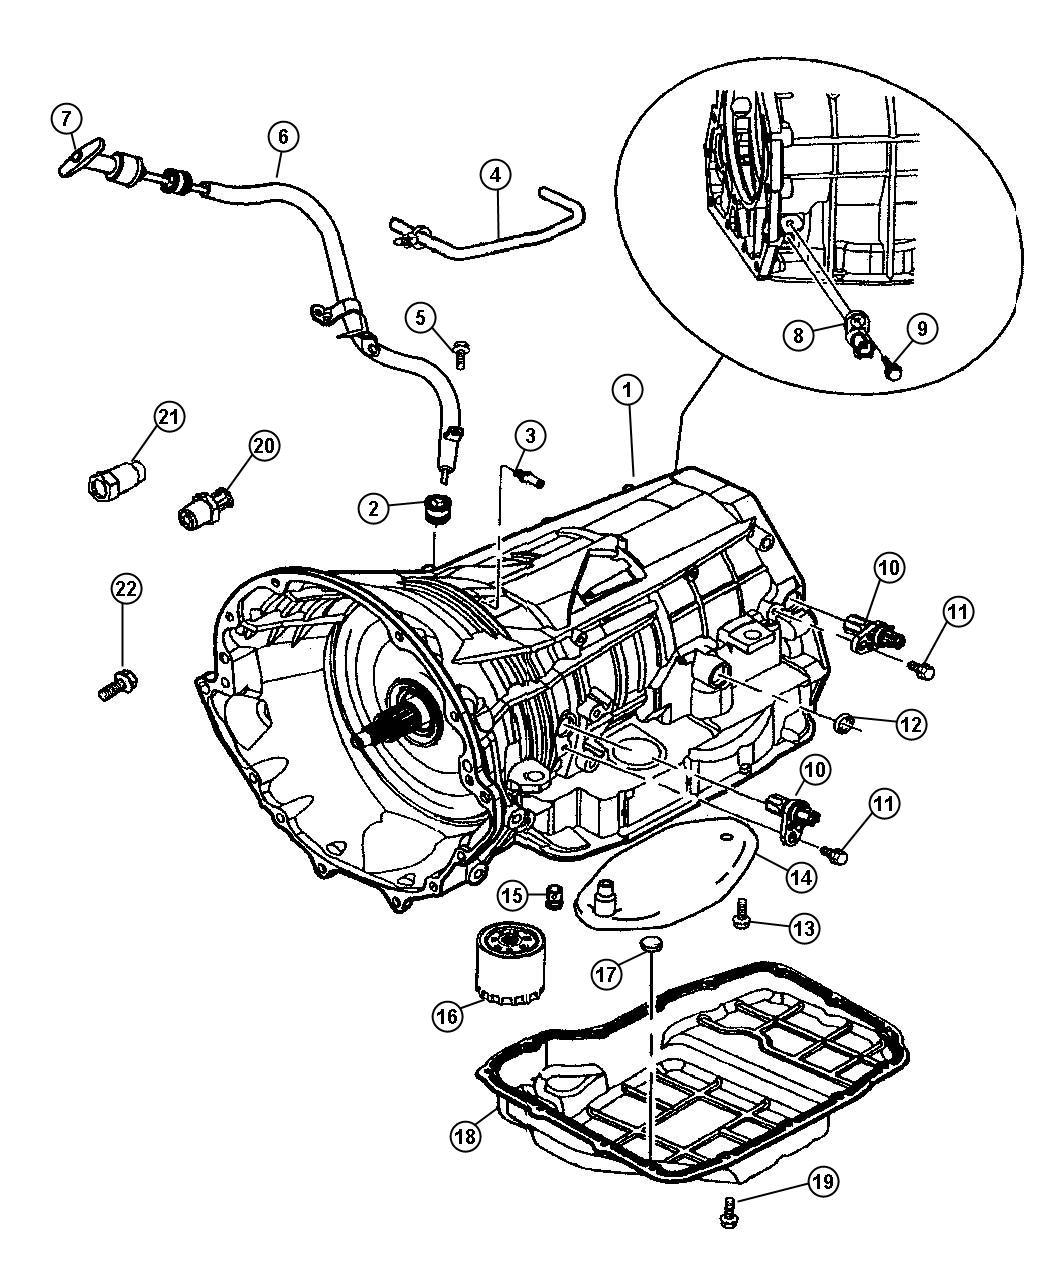 Jeep Parts Diagrams Great Design Of Wiring Diagram 2007 Wrangler Engine Dodge Transmission Free Image Online Oem